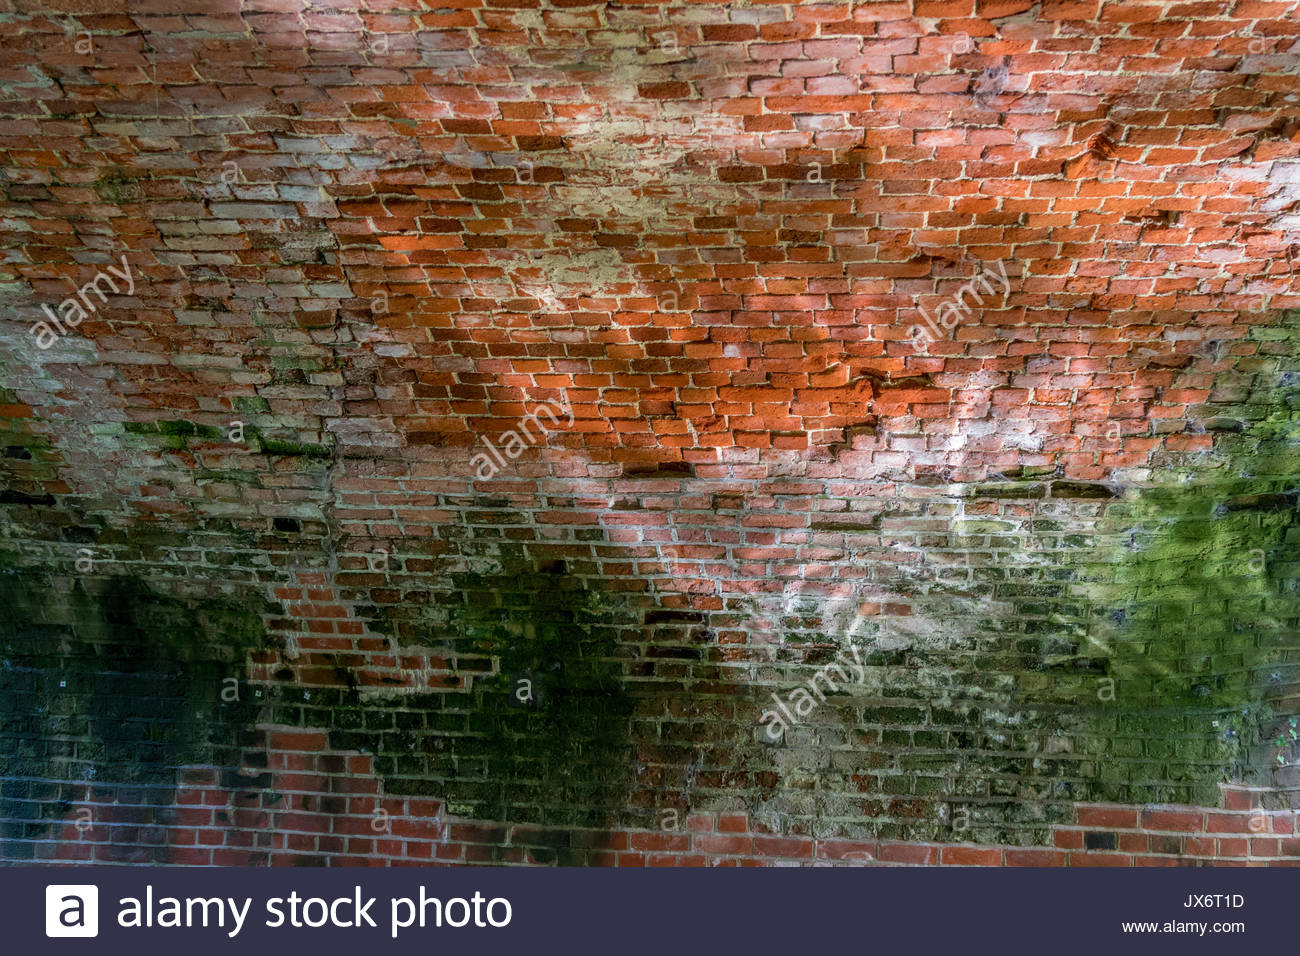 Dappled sunlight reflects from the walls of a tunnel on the Basingstoke Canal in Hampshire UK. - Stock Image